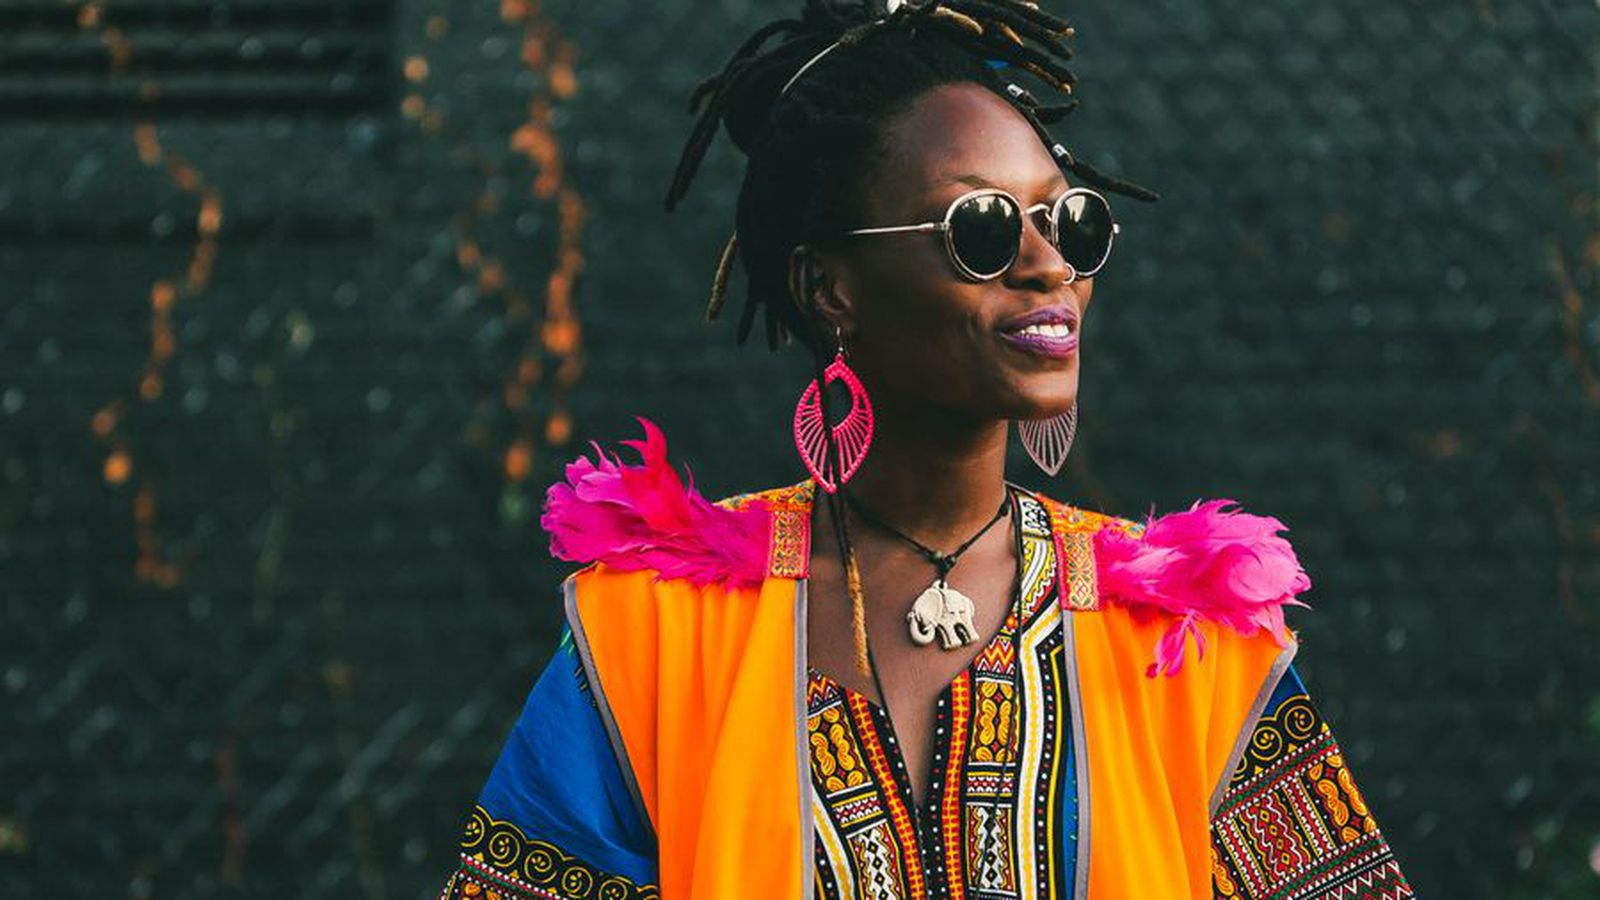 Accusing Black Americans Of Appropriating African Clothing